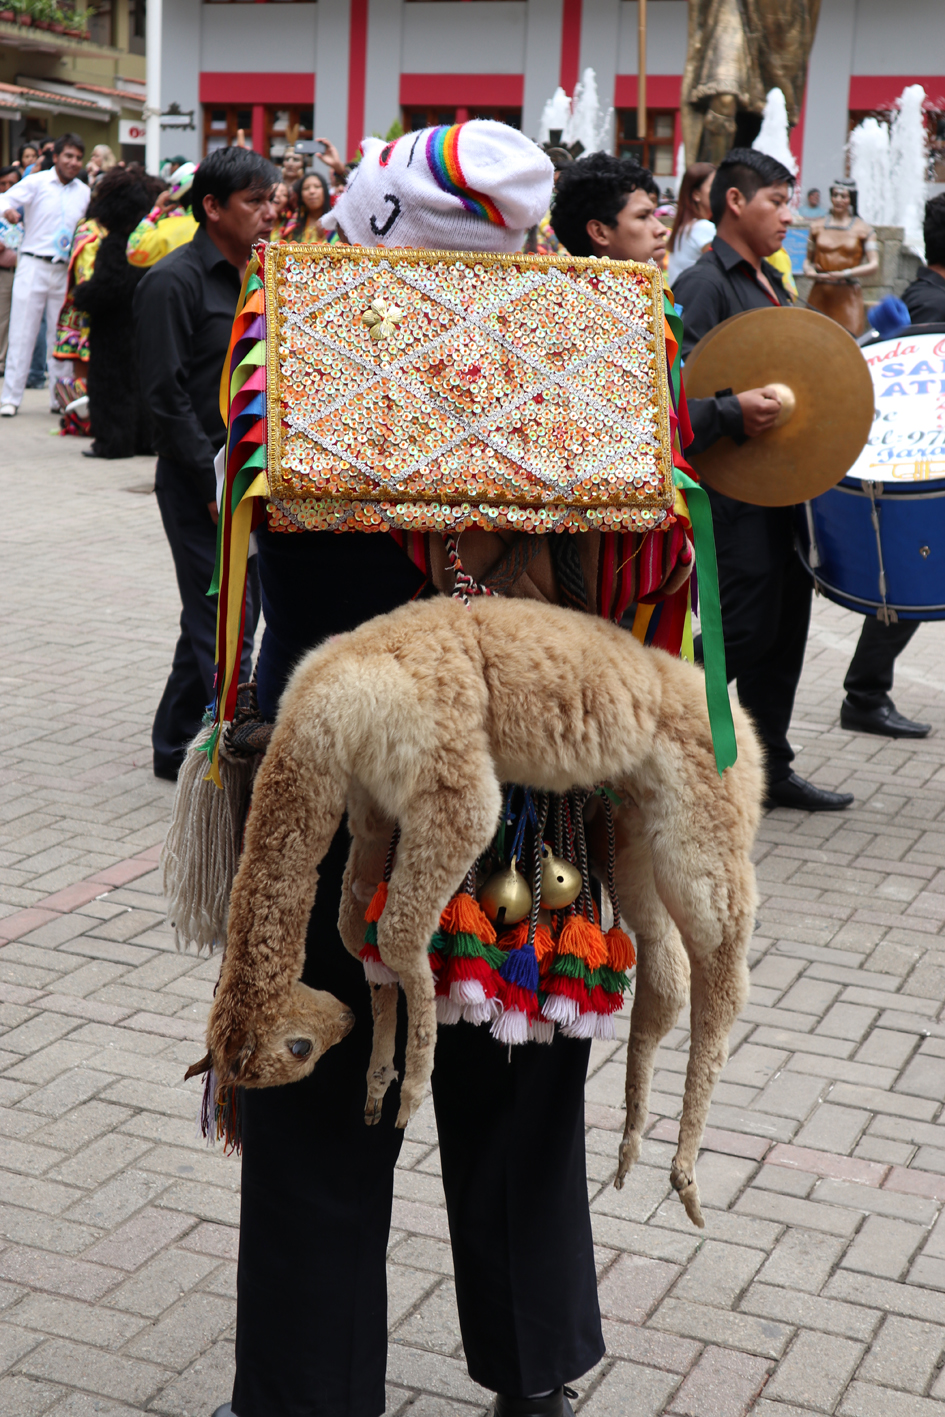 Llama not having a very good time at a festival